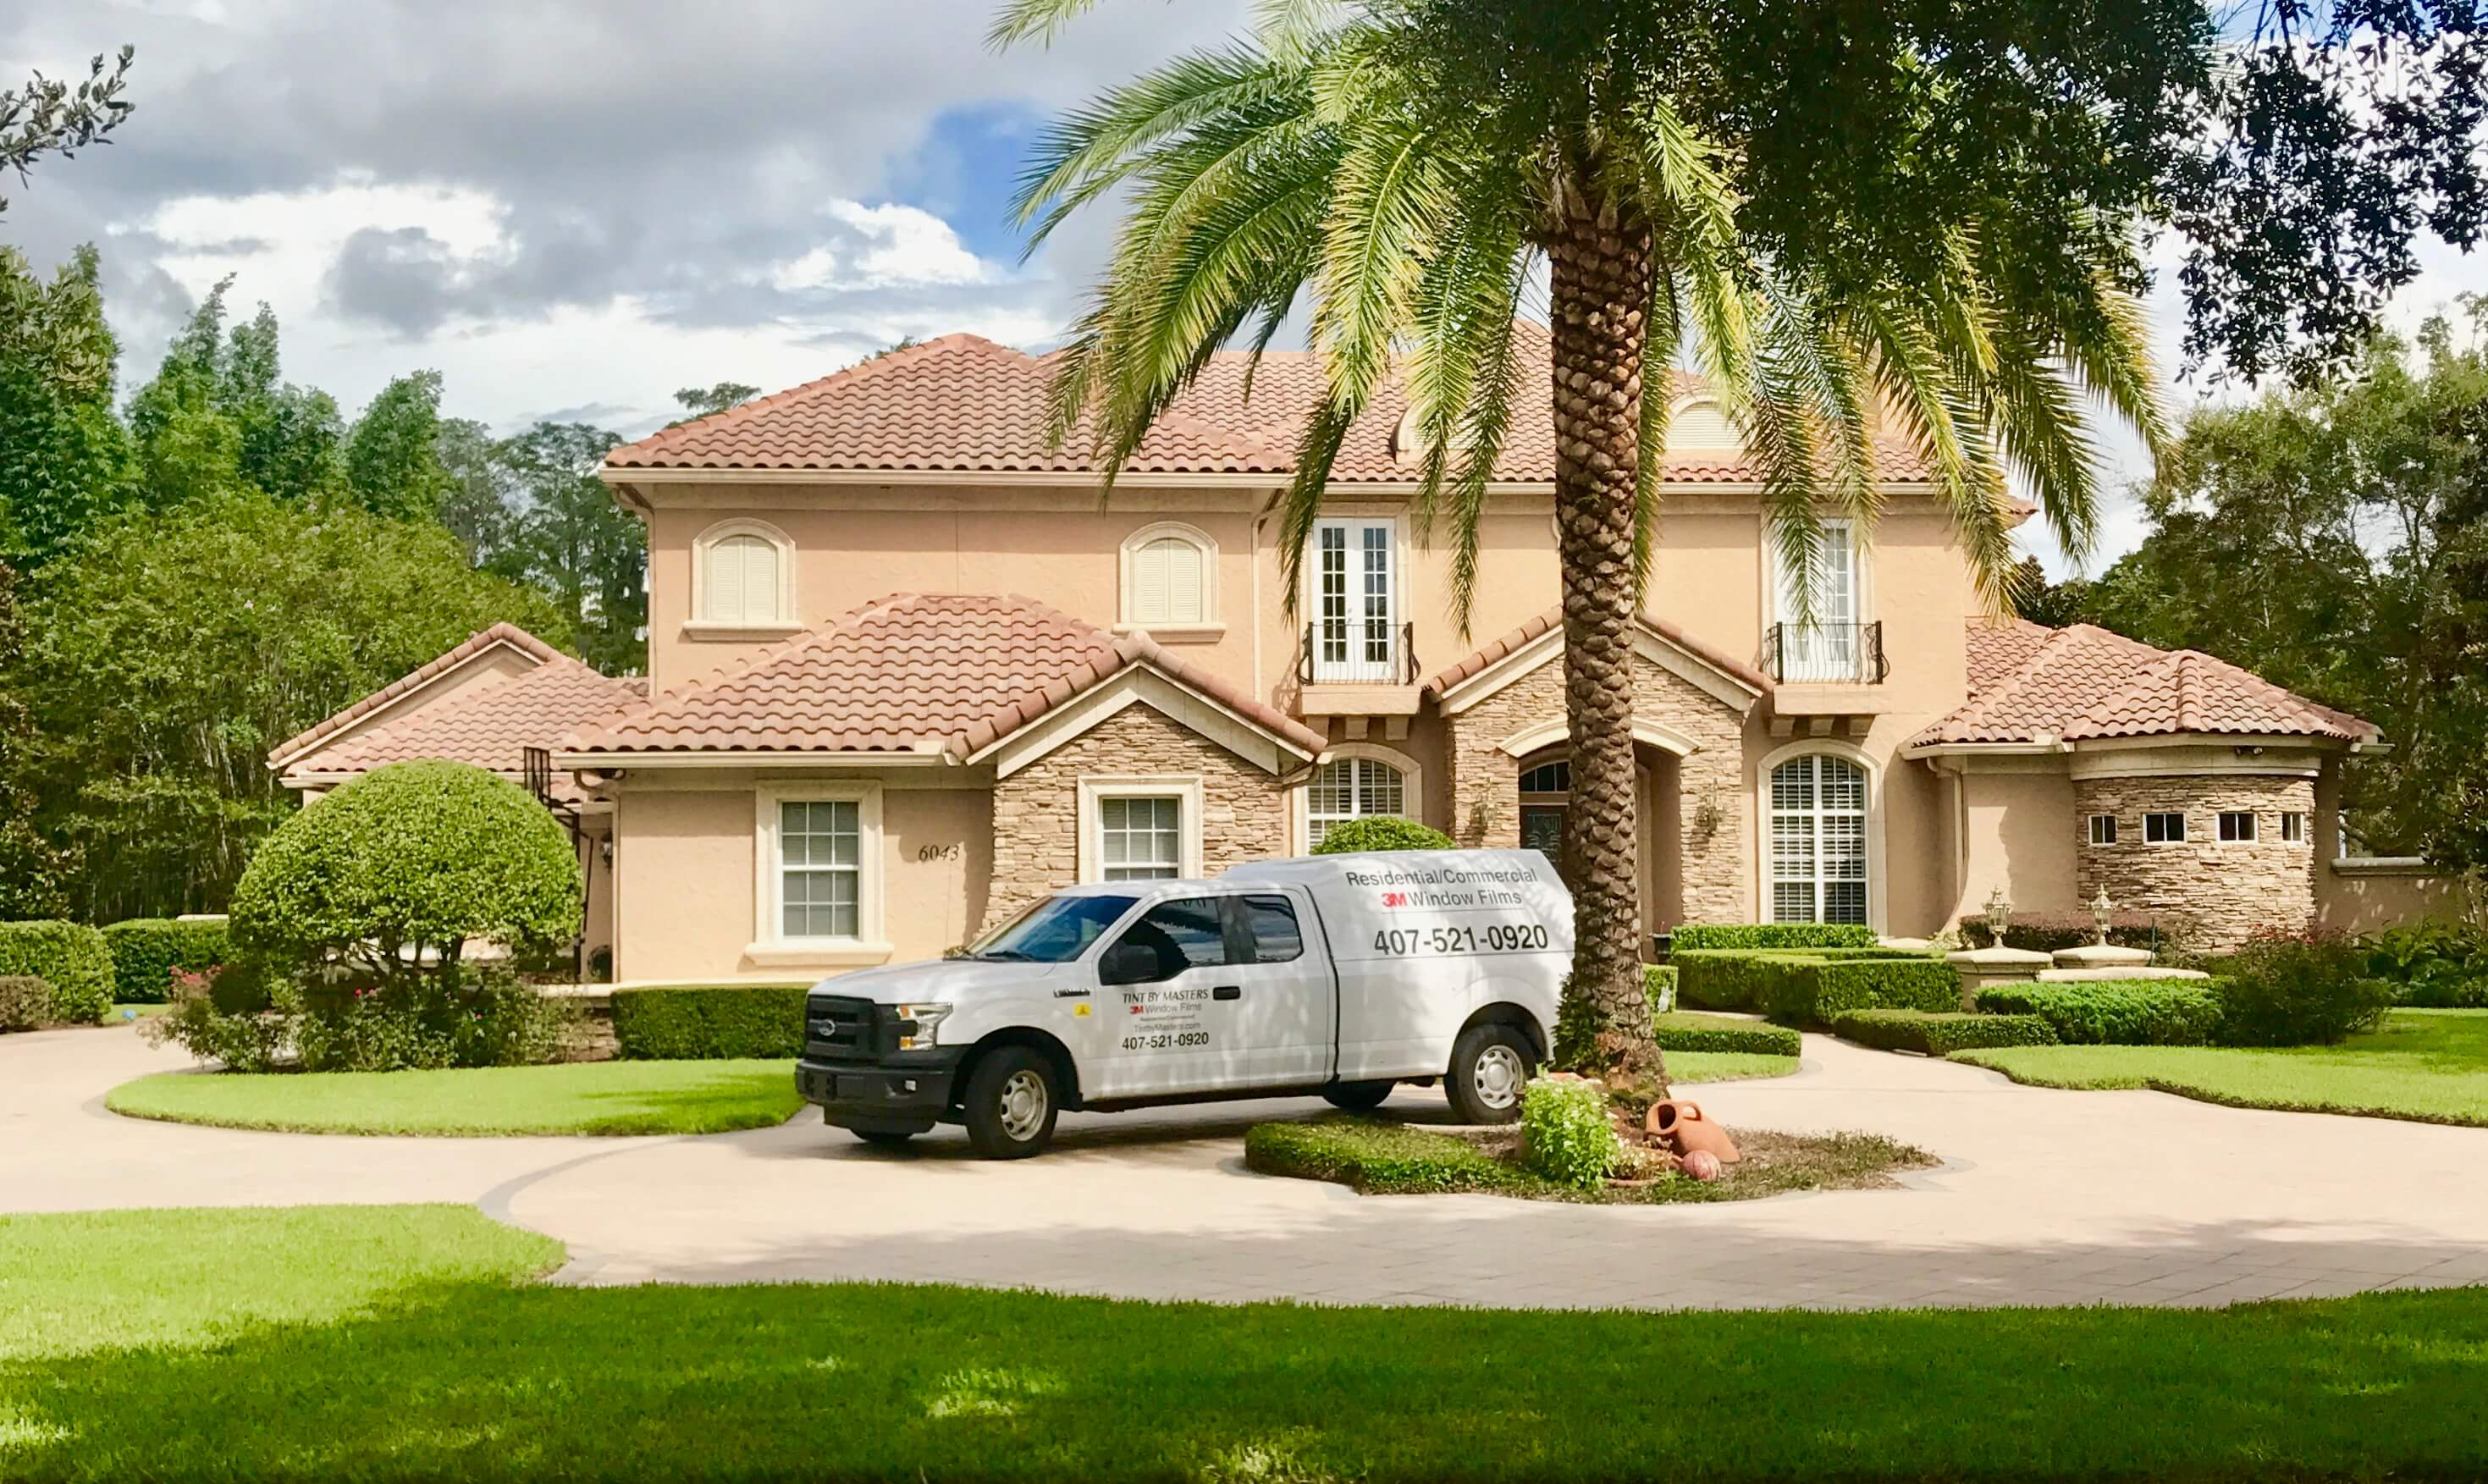 Tint By Masters Residential Window Film Installation Services in Orlando Florida